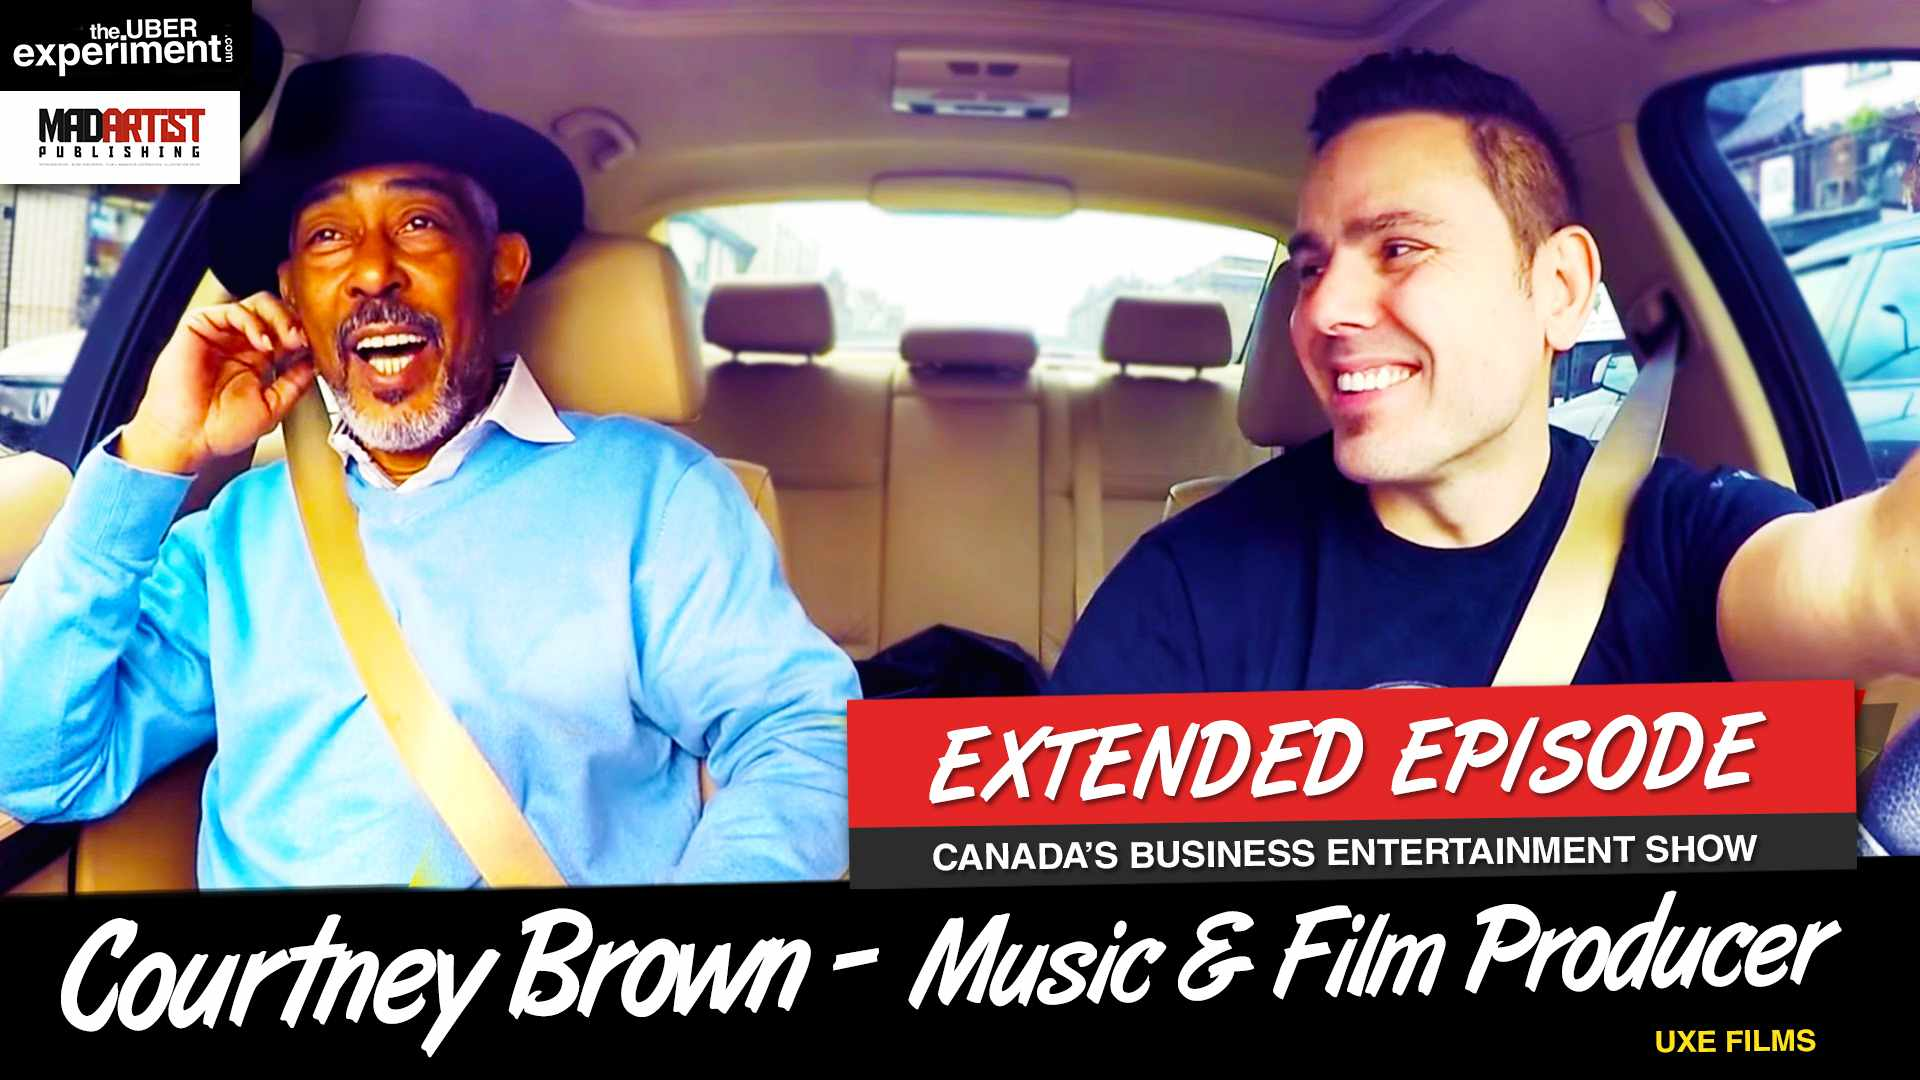 WE'RE GONNA BE DIRTY COPS - Marcin Interviews Music/Film Producer Courtney Brown on UBER Experiment